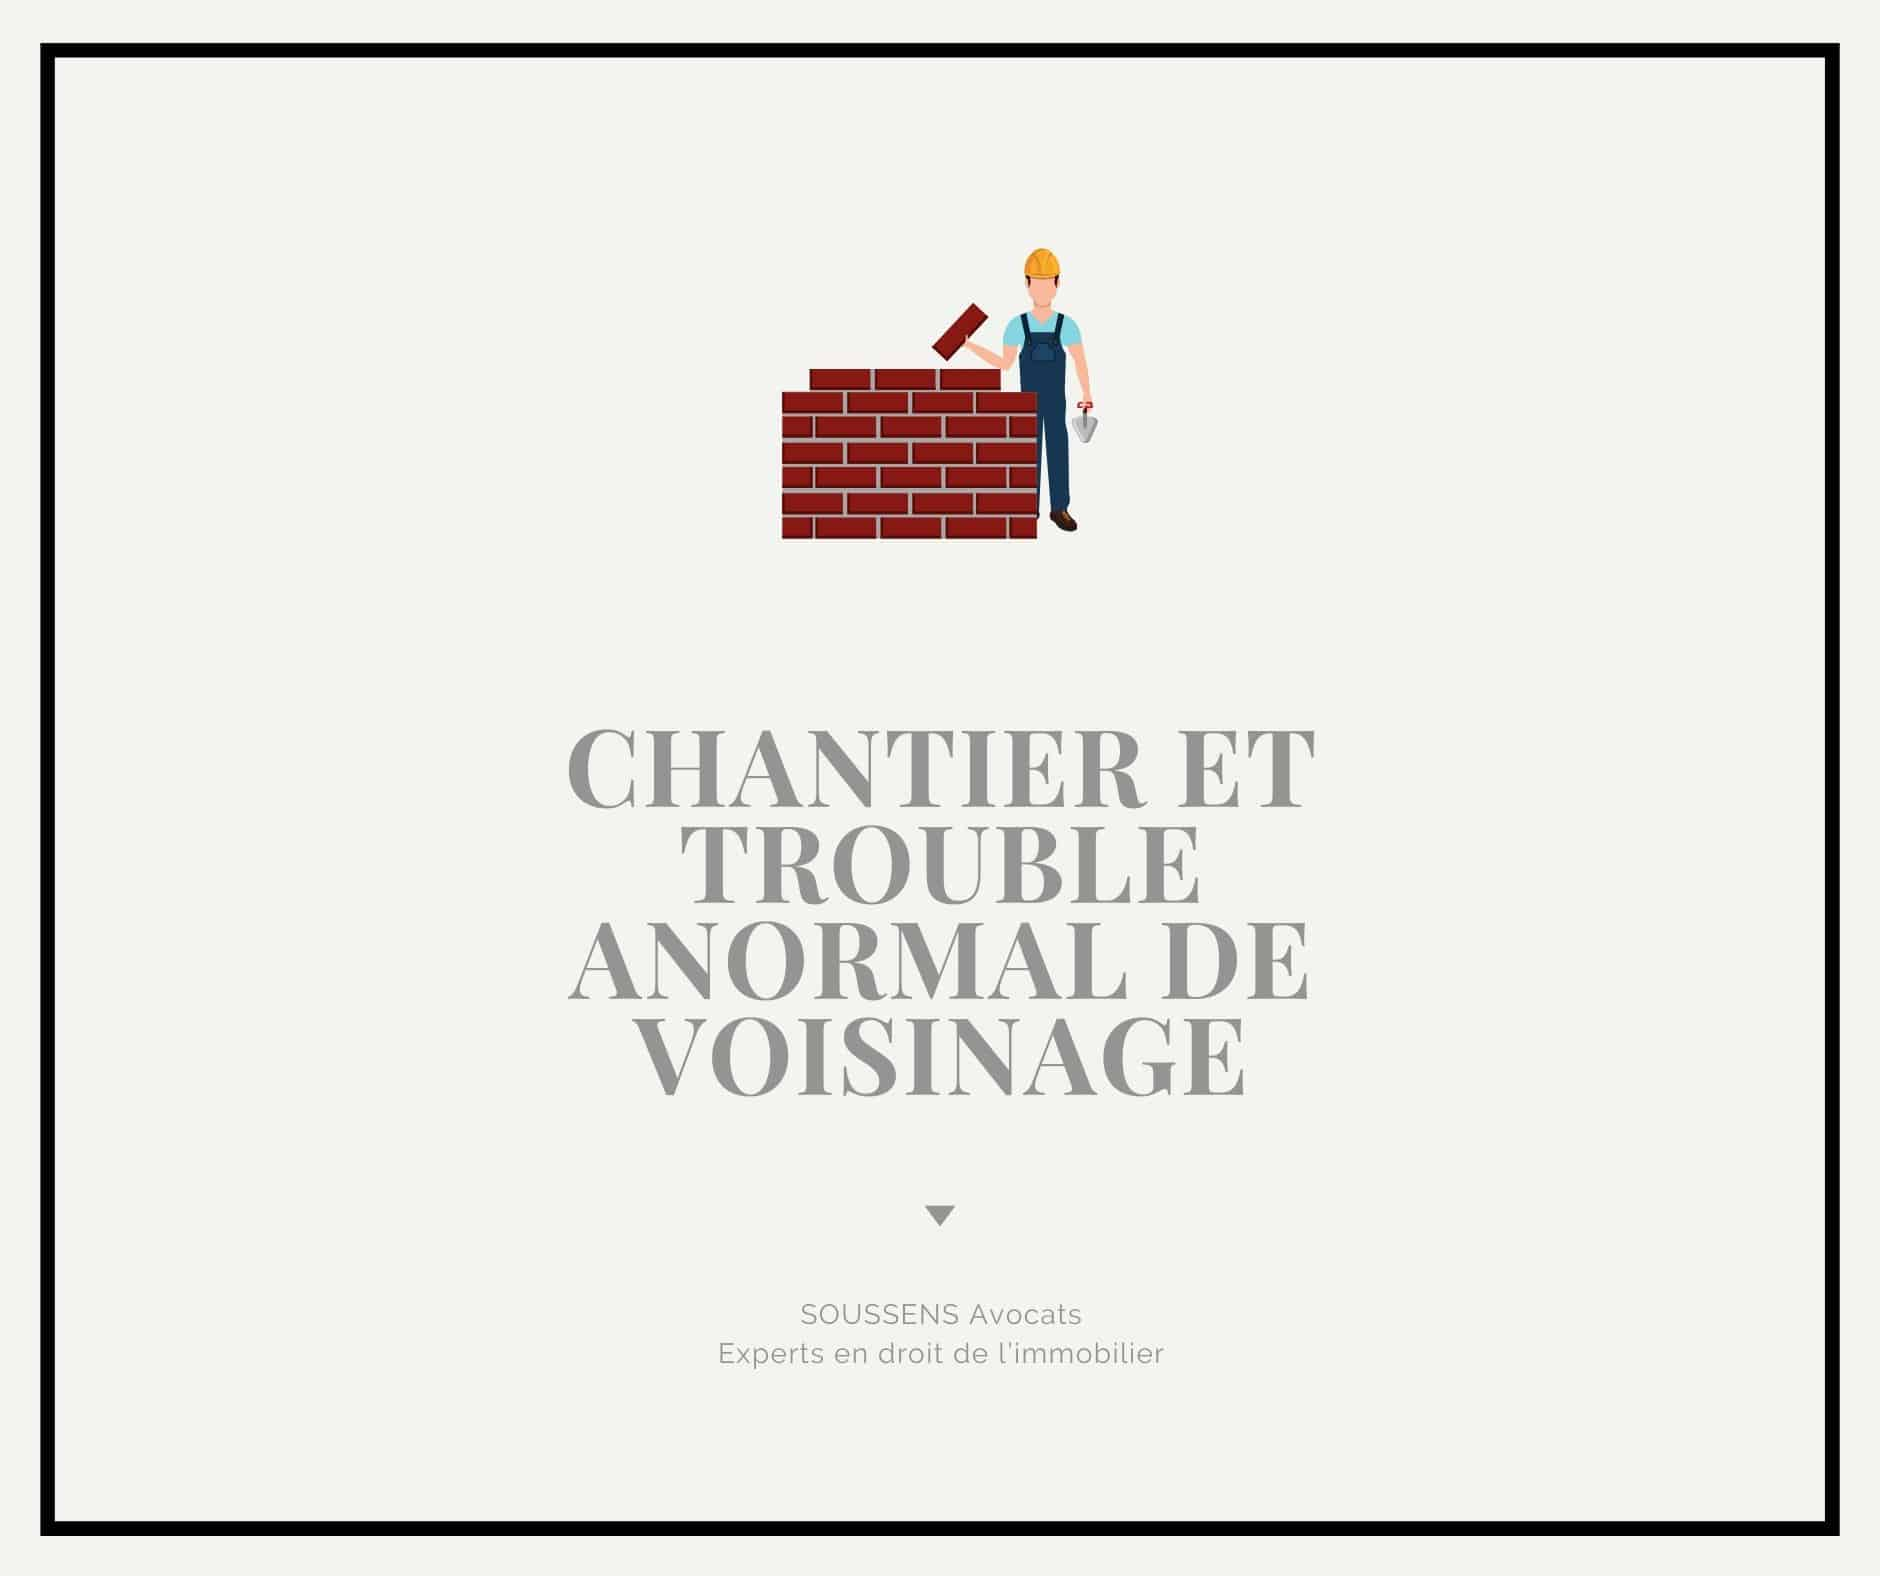 Chantier et trouble anormal de voisinage